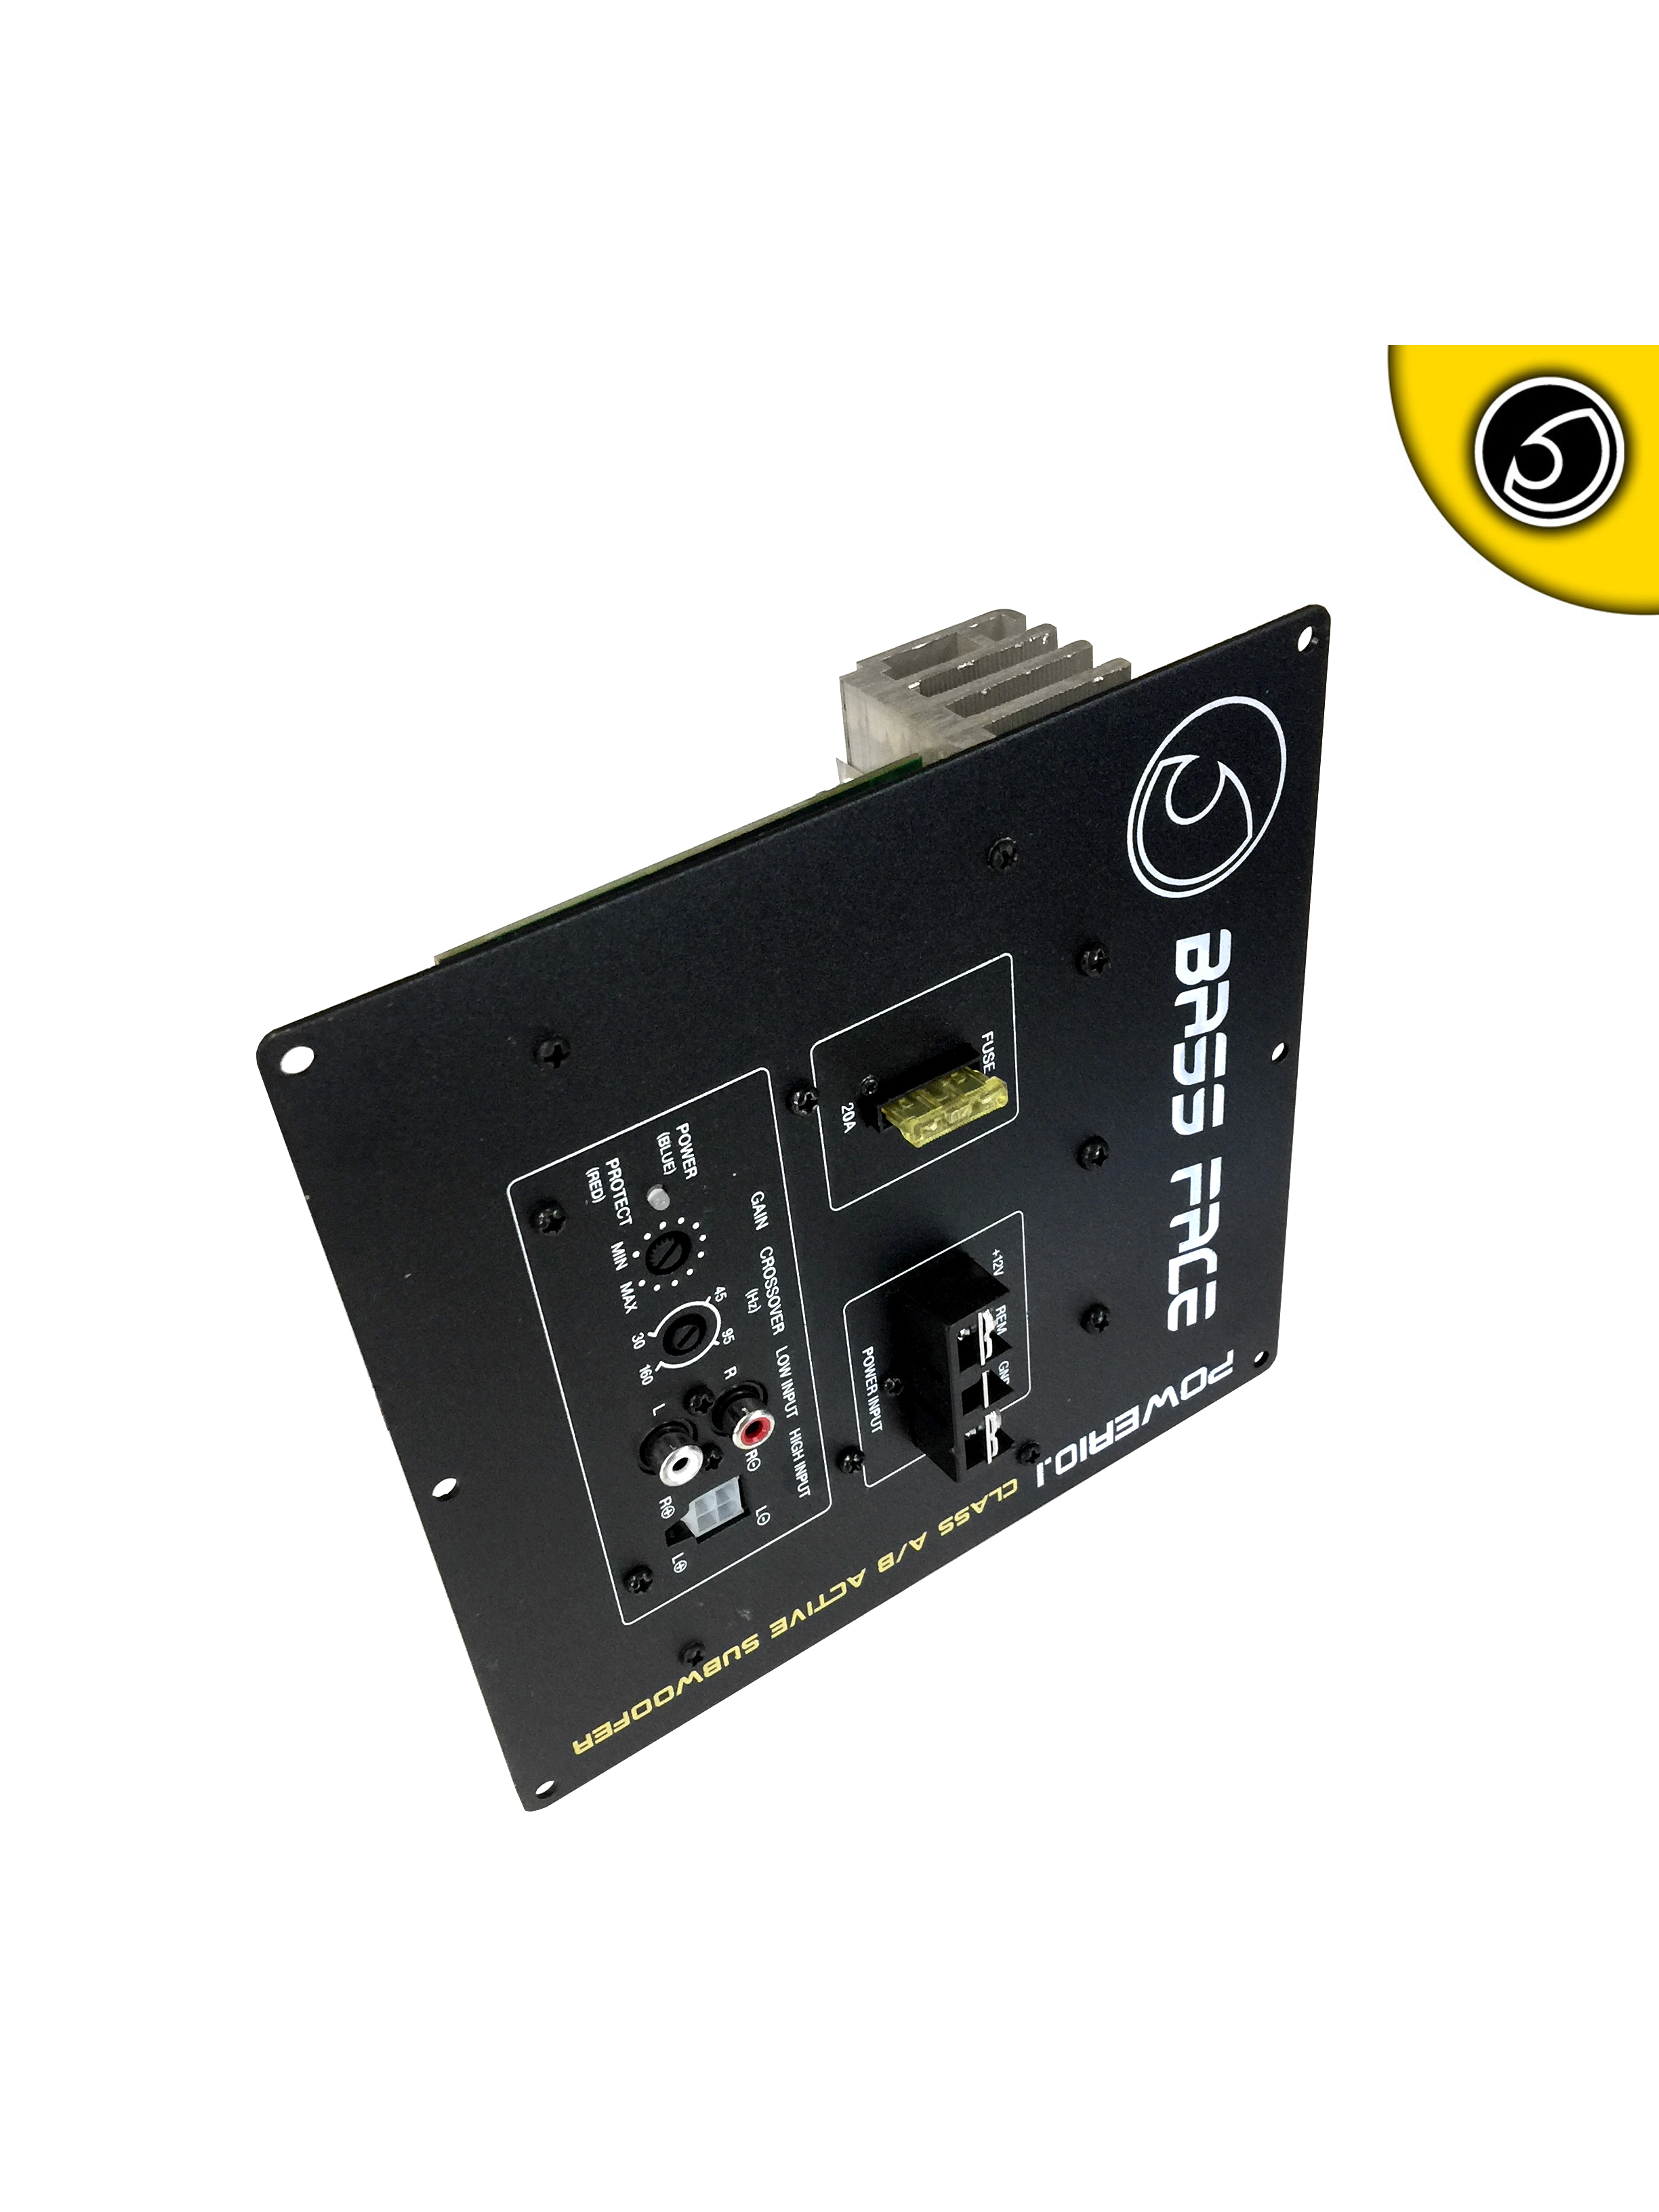 Thompsons Ltd Bassface Power101a Replacement Amplifier For Activebass Wiring Pickups Power101 Active Bass Box